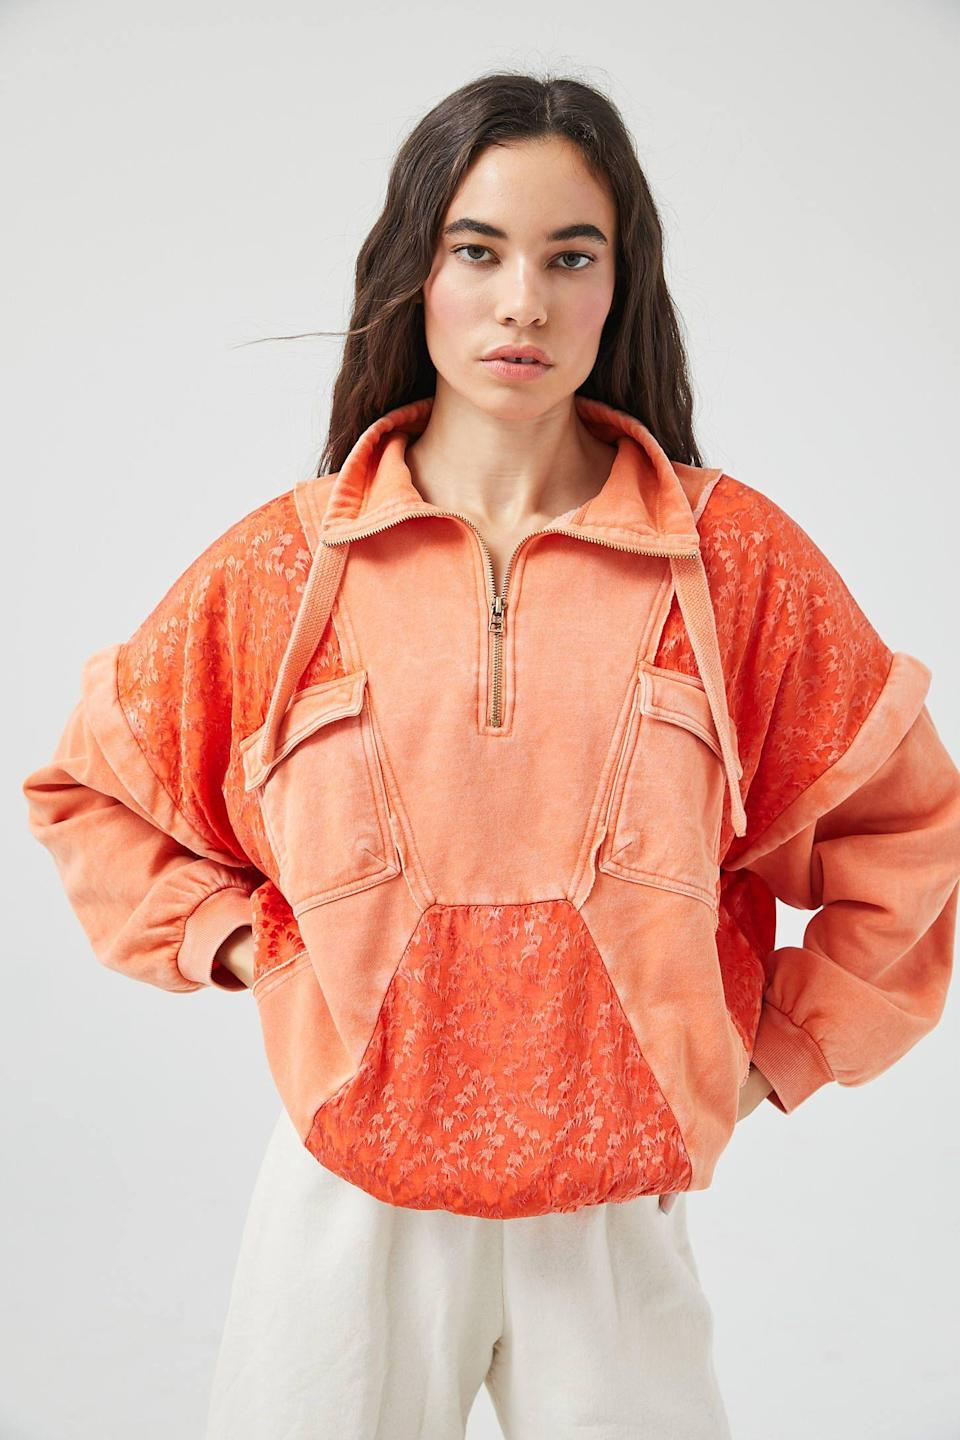 "<p><strong>Out From Under</strong></p><p>urbanoutfitters.com</p><p><strong>$89.00</strong></p><p><a href=""https://go.redirectingat.com?id=74968X1596630&url=https%3A%2F%2Fwww.urbanoutfitters.com%2Fshop%2Fout-from-under-jude-jacquard-half-zip-sweatshirt&sref=https%3A%2F%2Fwww.seventeen.com%2Ffashion%2Fg34701248%2Furban-outfitters-2020-black-friday-sale%2F"" rel=""nofollow noopener"" target=""_blank"" data-ylk=""slk:Shop Now"" class=""link rapid-noclick-resp"">Shop Now</a></p><p>Vibes like a windbreaker, soft like a hoodie–it's the best of both. </p>"